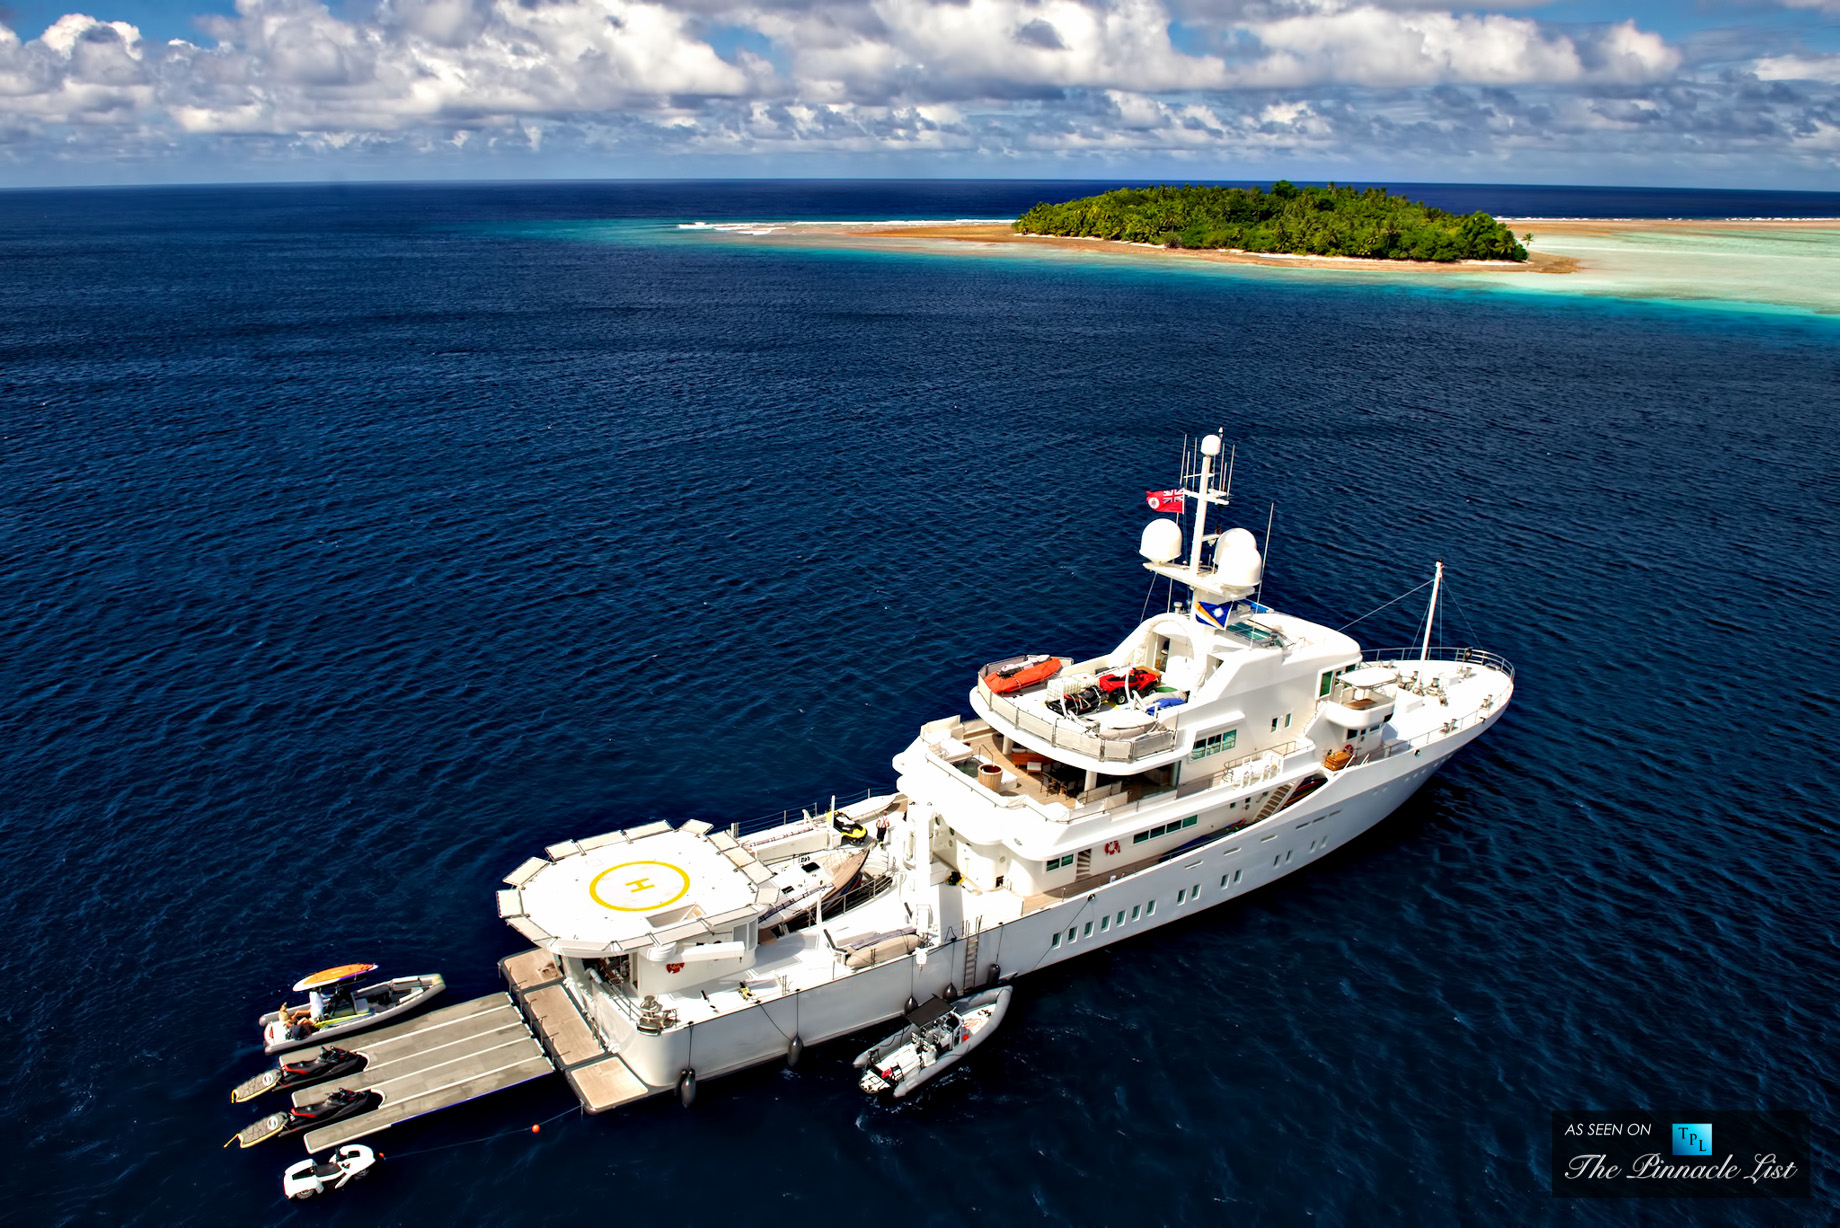 Senses Superyacht - Charter Availability for Caribbean and South Pacific